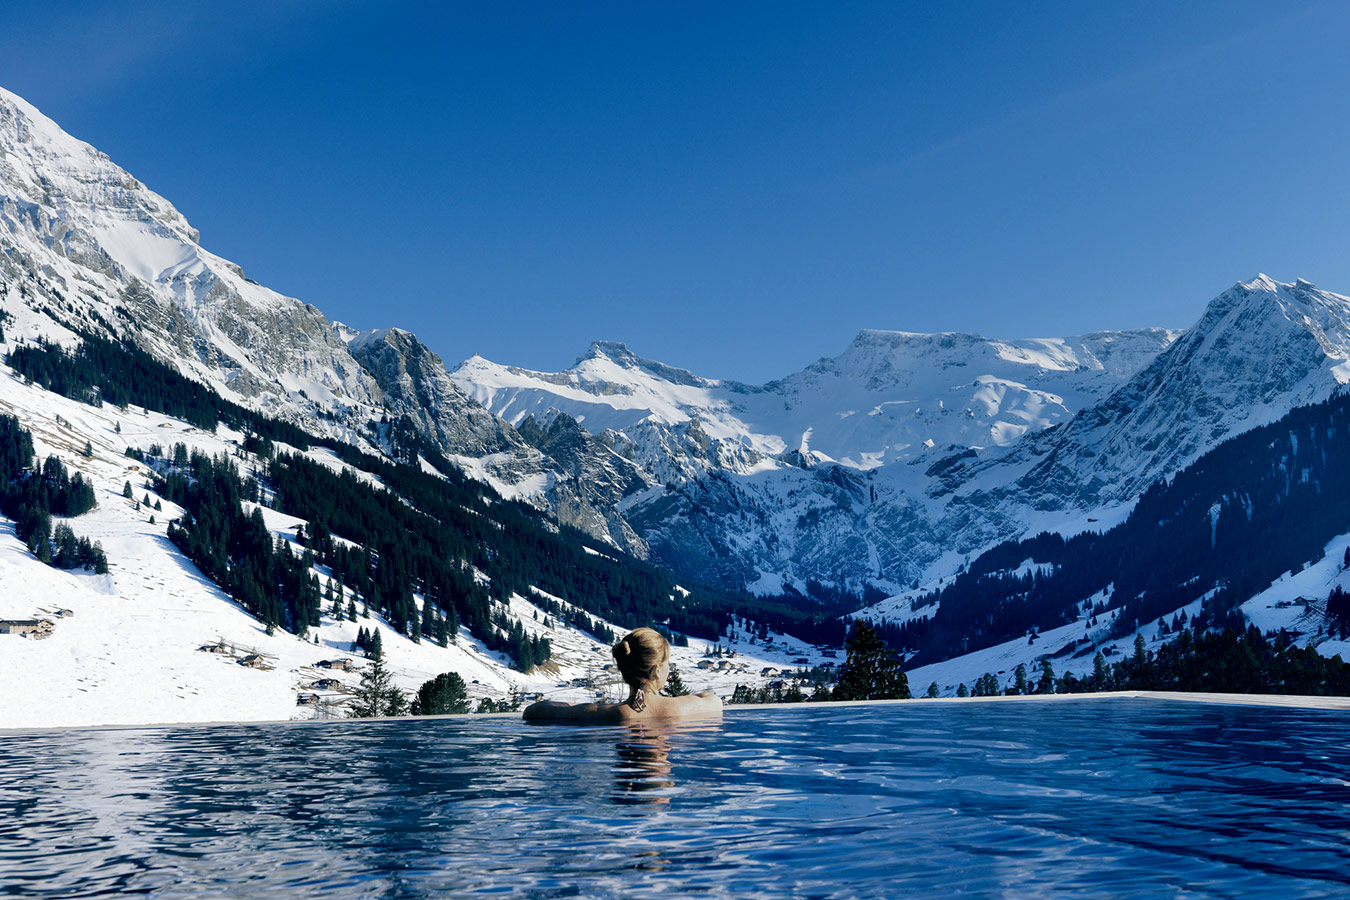 The Cambrian Hotel Adelboden, Swiss Alps 01